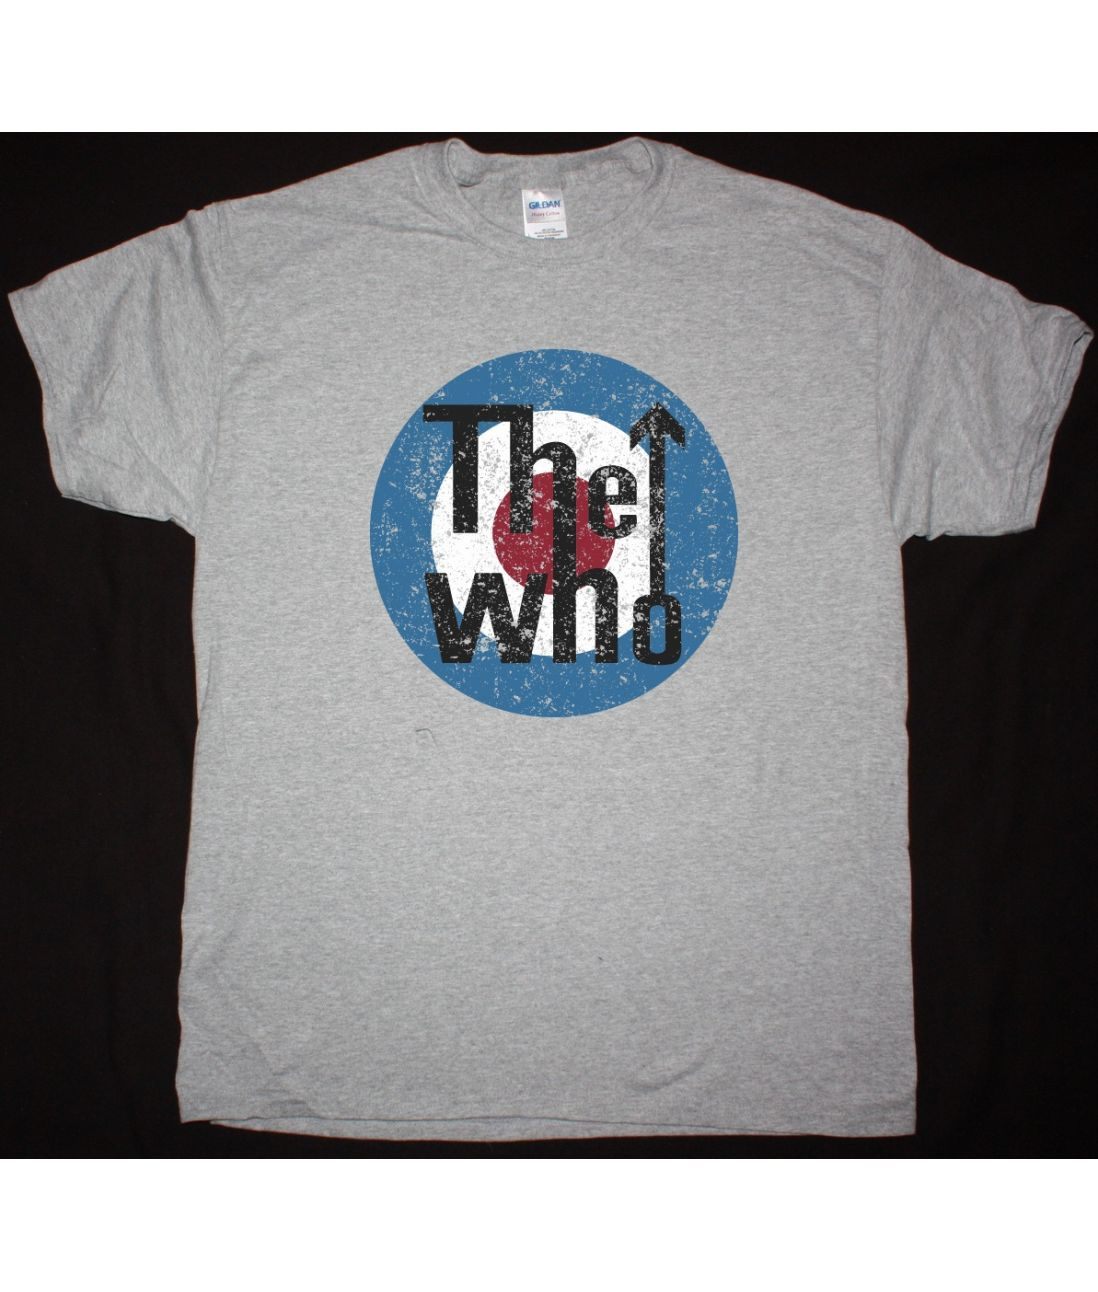 THE WHO HEAVY DISTRESSED LOGO NEW SPORTS GREY T SHIRT